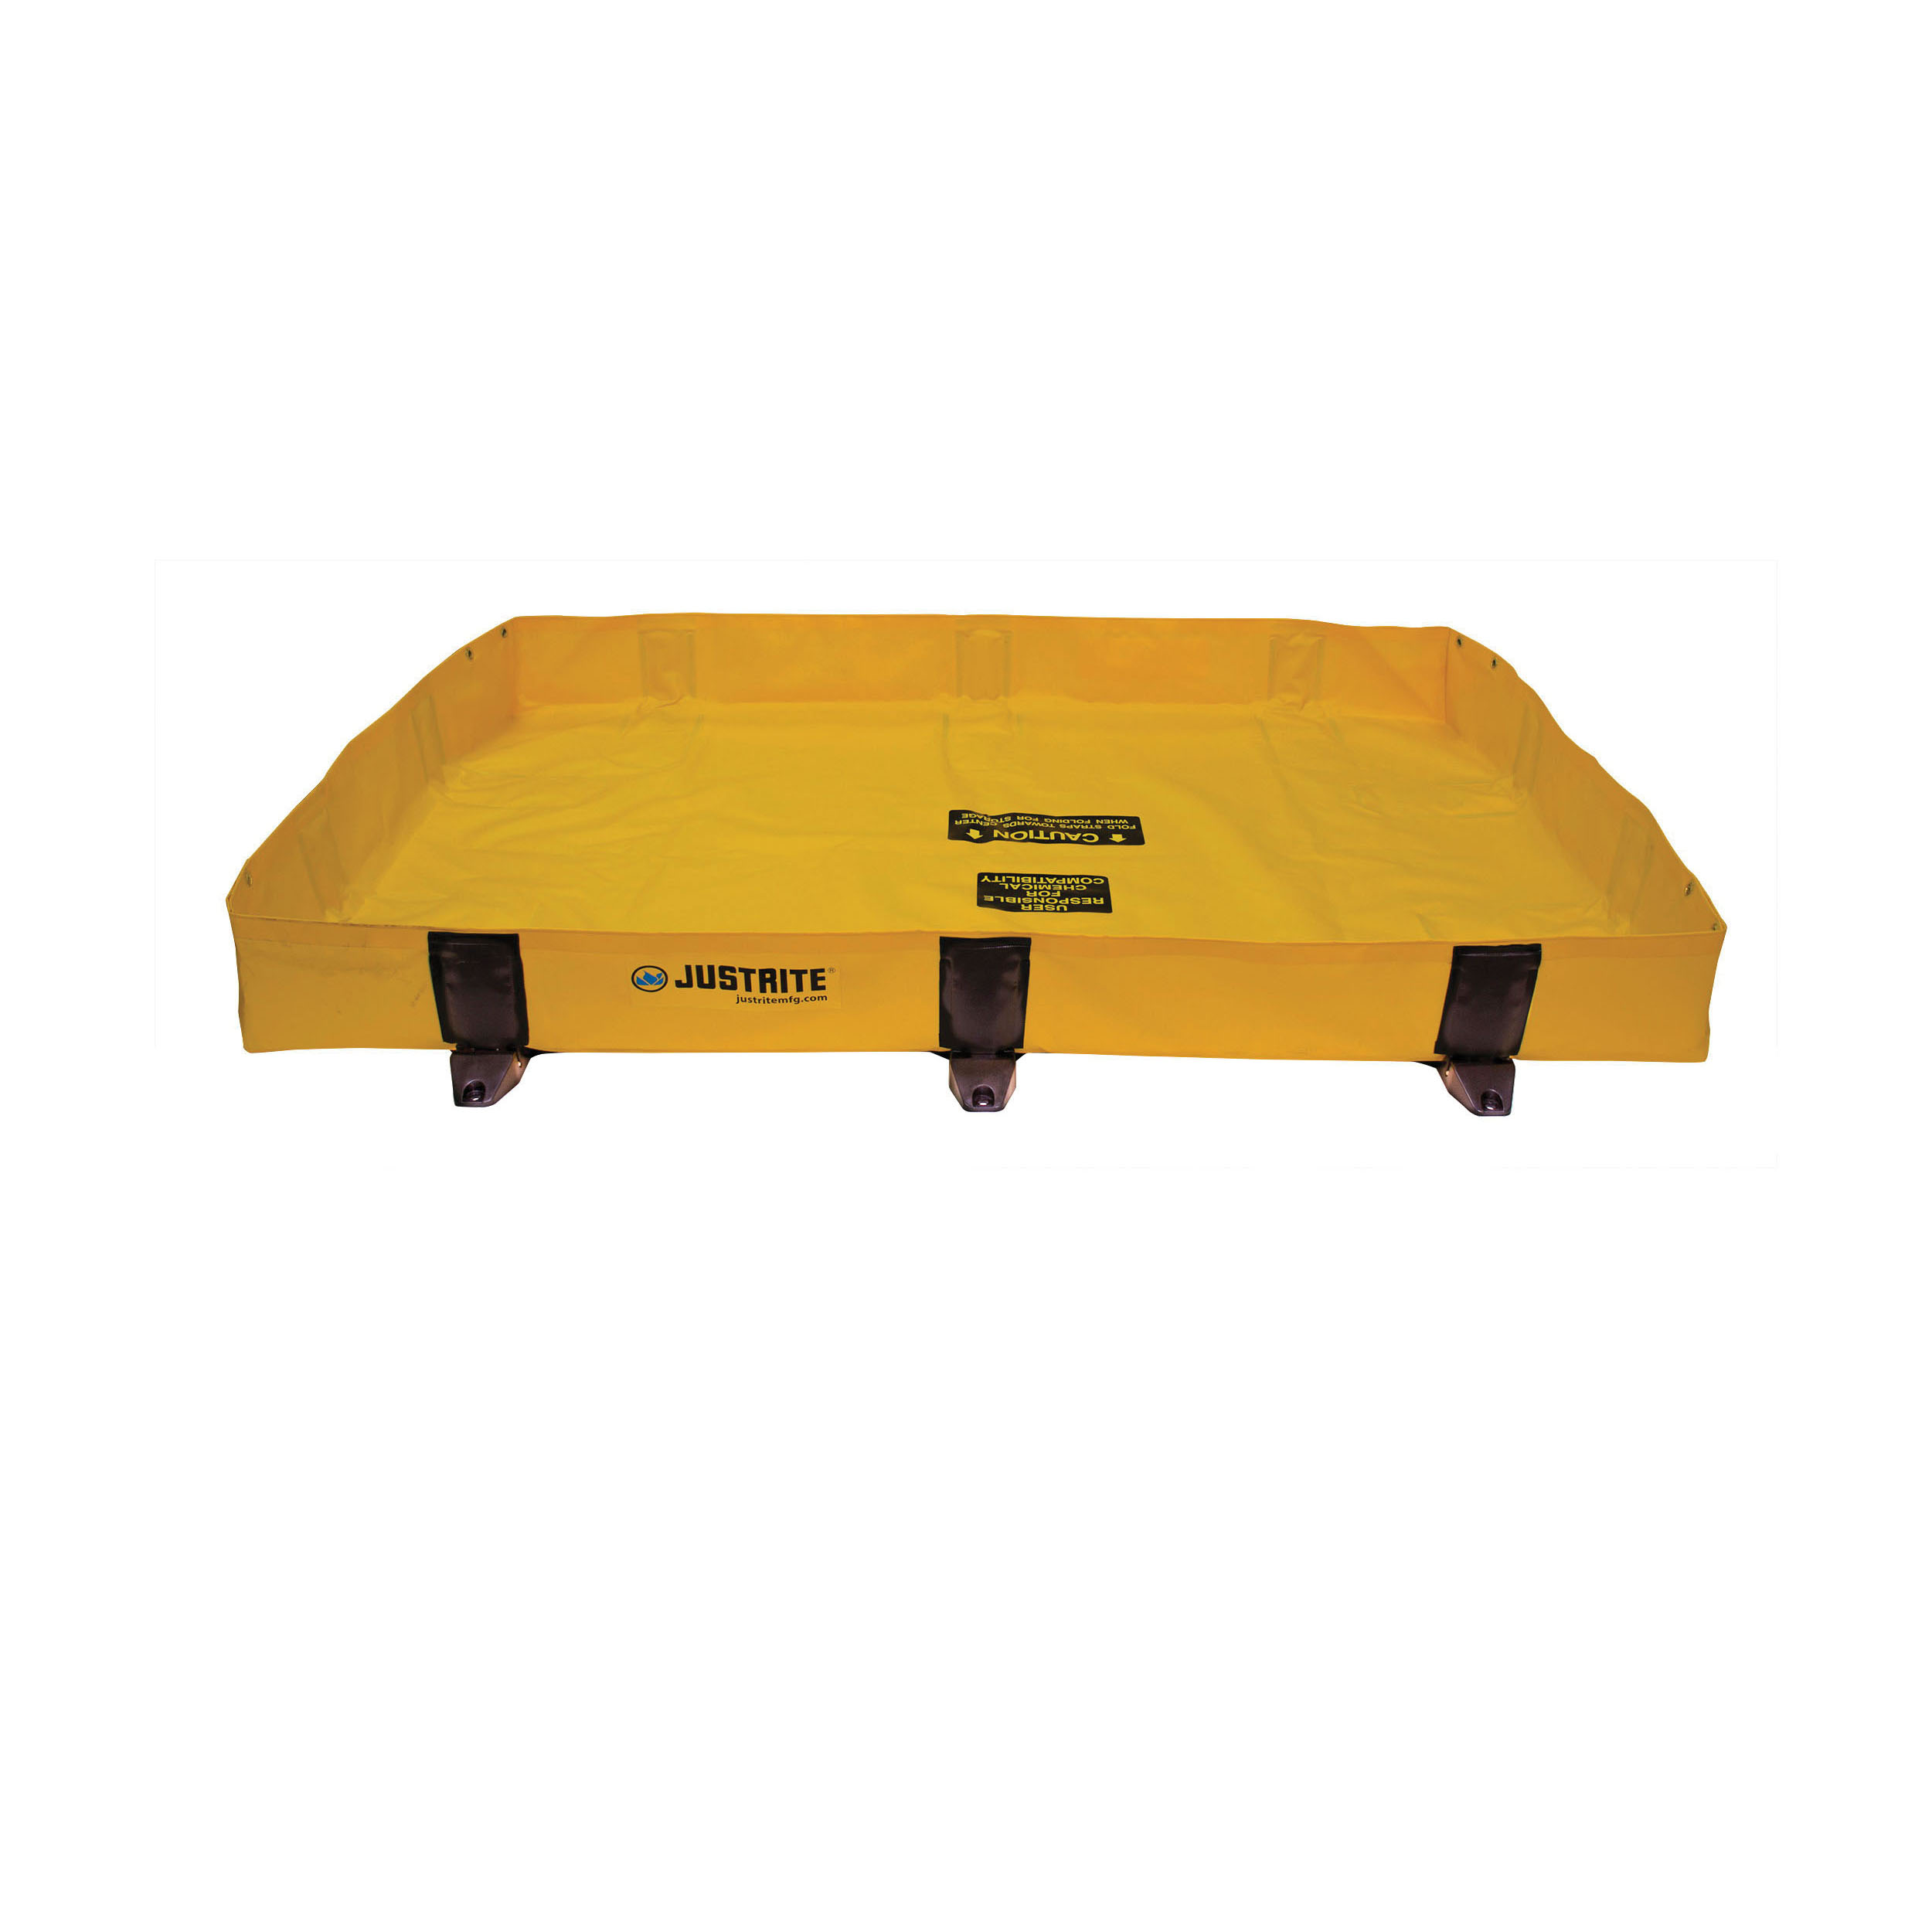 Justrite® 28372 Rigid-Lock QuickBerm® Lite Spill Containment Berm, 6 ft L x 4 ft W x 8 in H, EnGuard™ I/PVC Coated Fabric